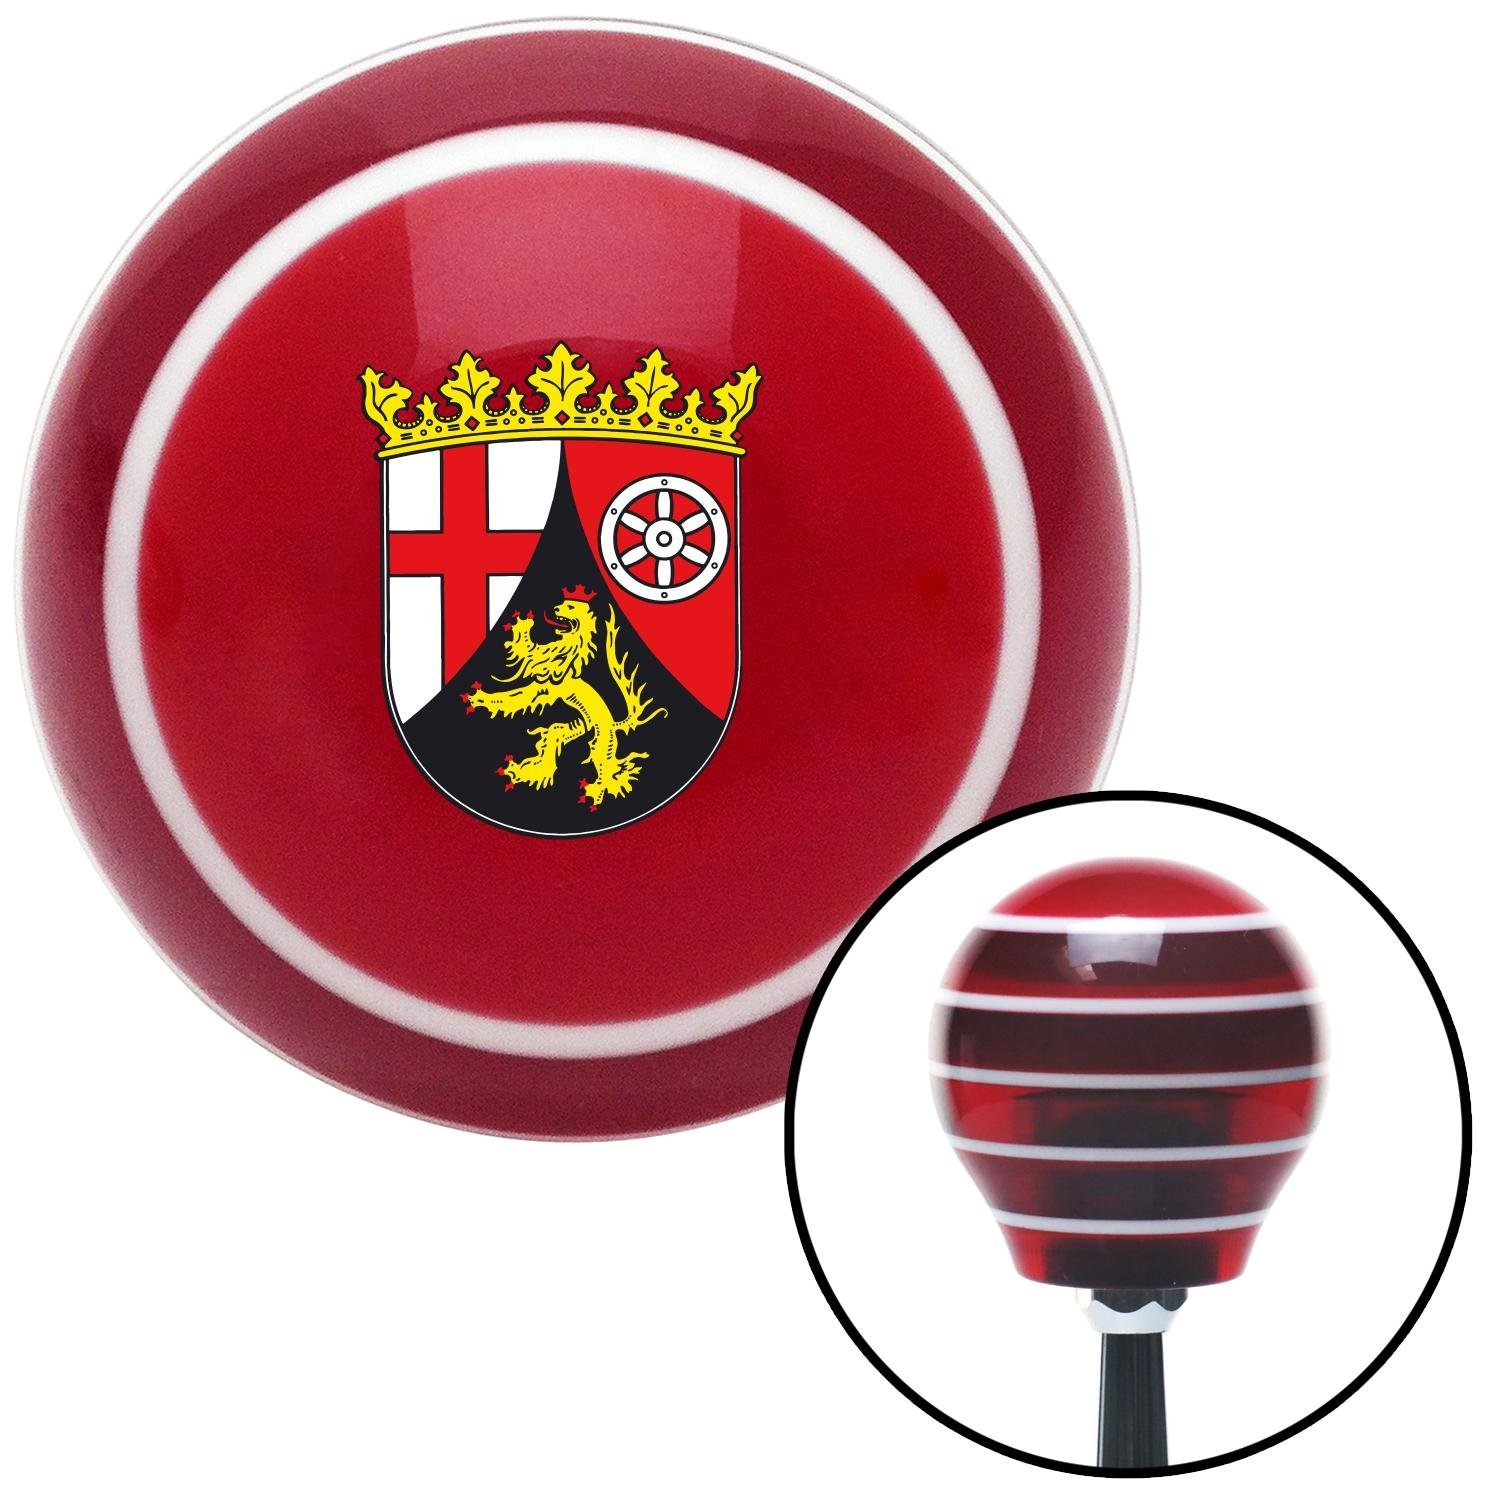 Rhineland Palatinate Coat of Arms American Shifter 114103 Red Stripe Shift Knob with M16 x 1.5 Insert